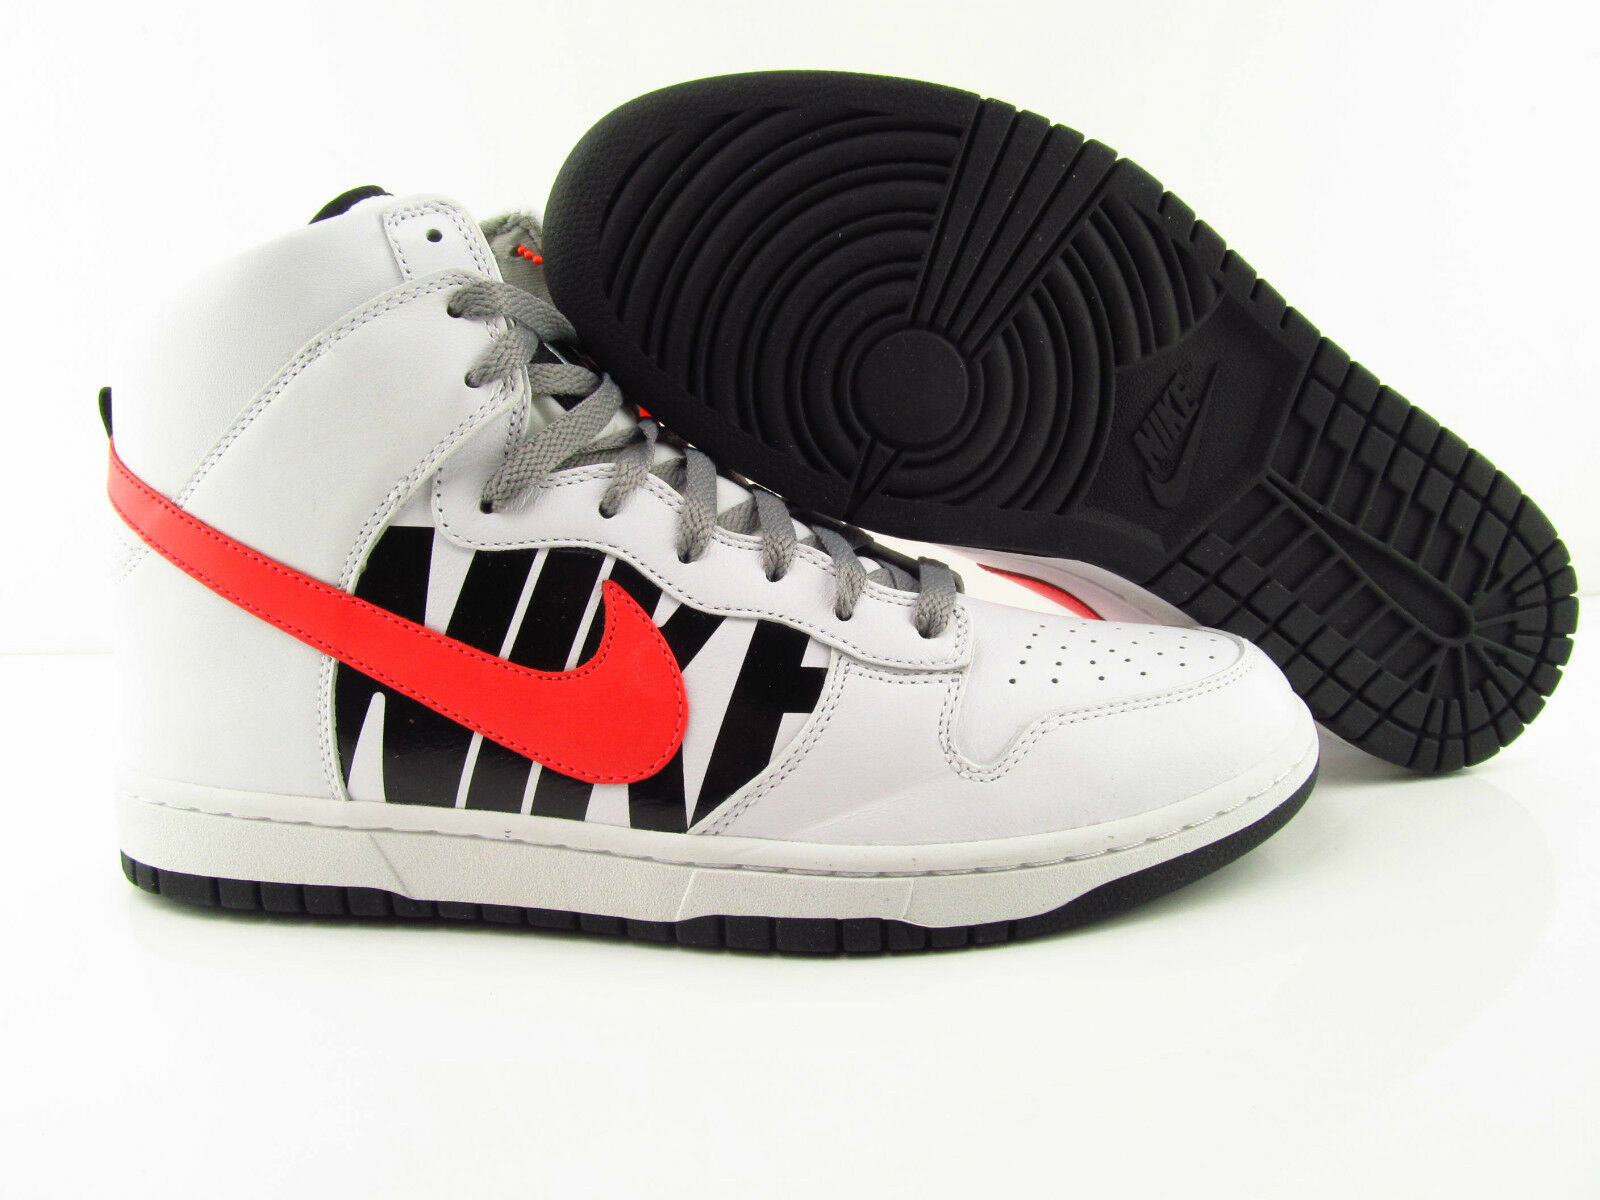 Nike Dunk LUX / New Undefeated 1985 Deadstock RARE New / UK_3.5 US_4 Eur_36 e29128